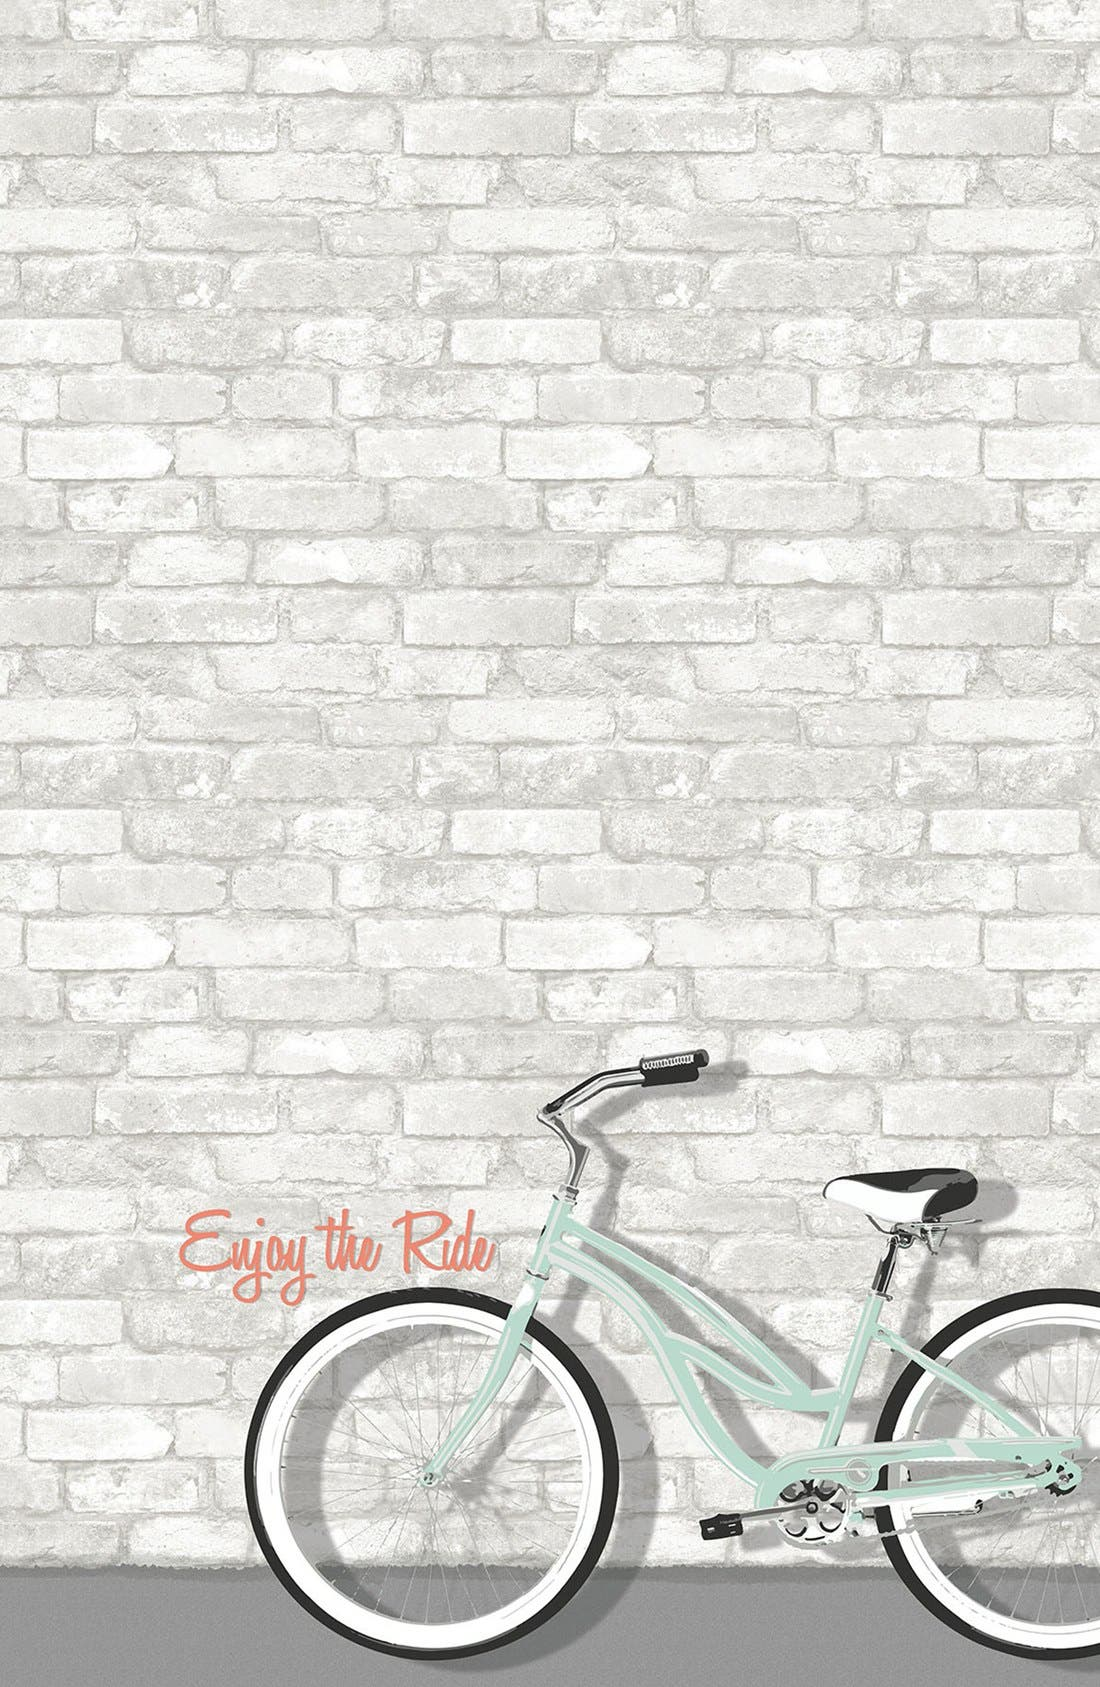 Main Image - Wallpops 'Enjoy the Ride' Dry Erase Wall Decal